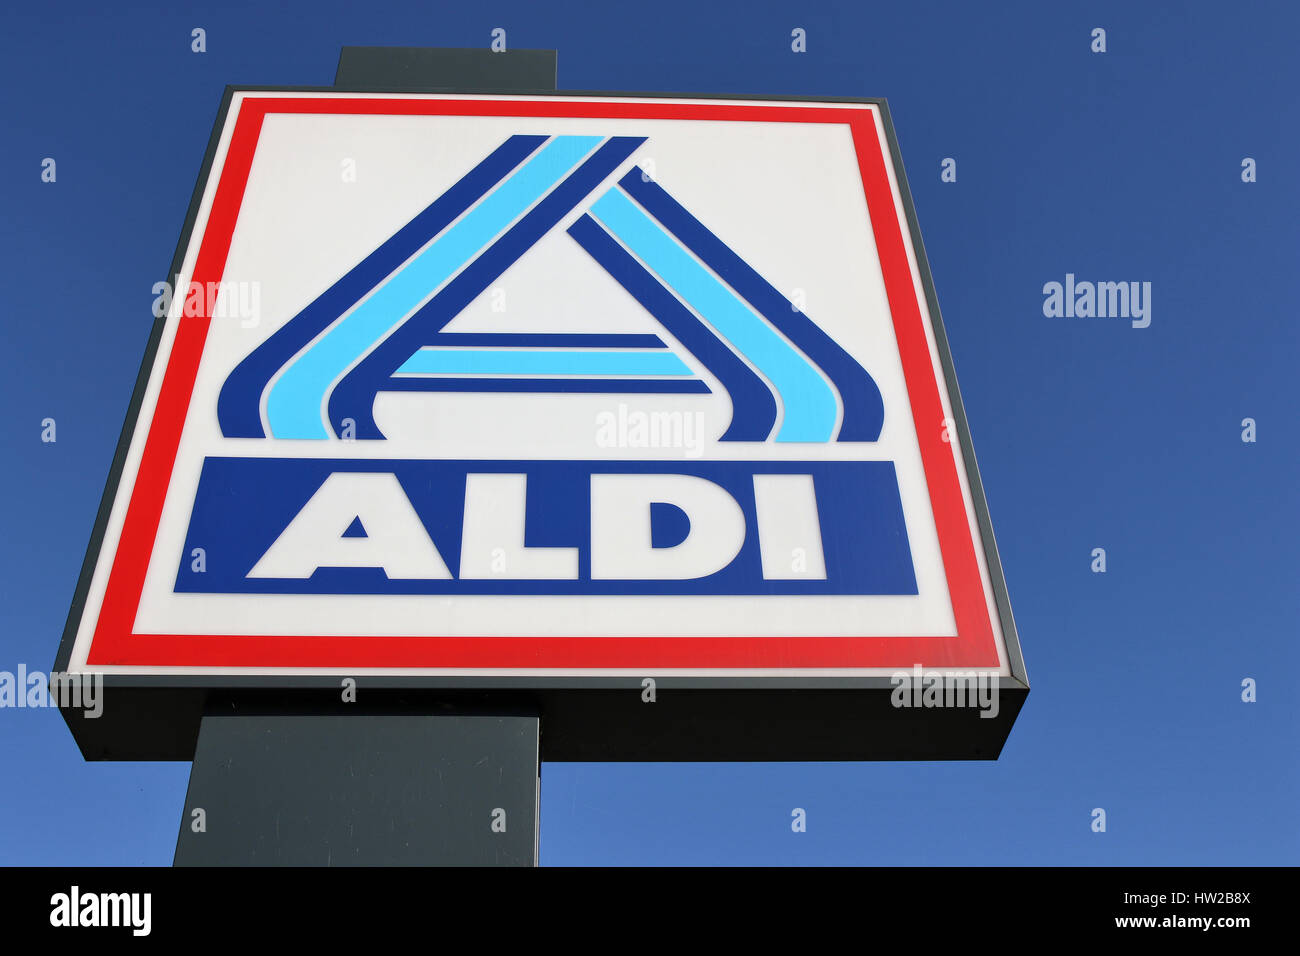 Aldi nord stock photos aldi nord stock images alamy aldi sign north division against blue sky aldi is a leading global discount biocorpaavc